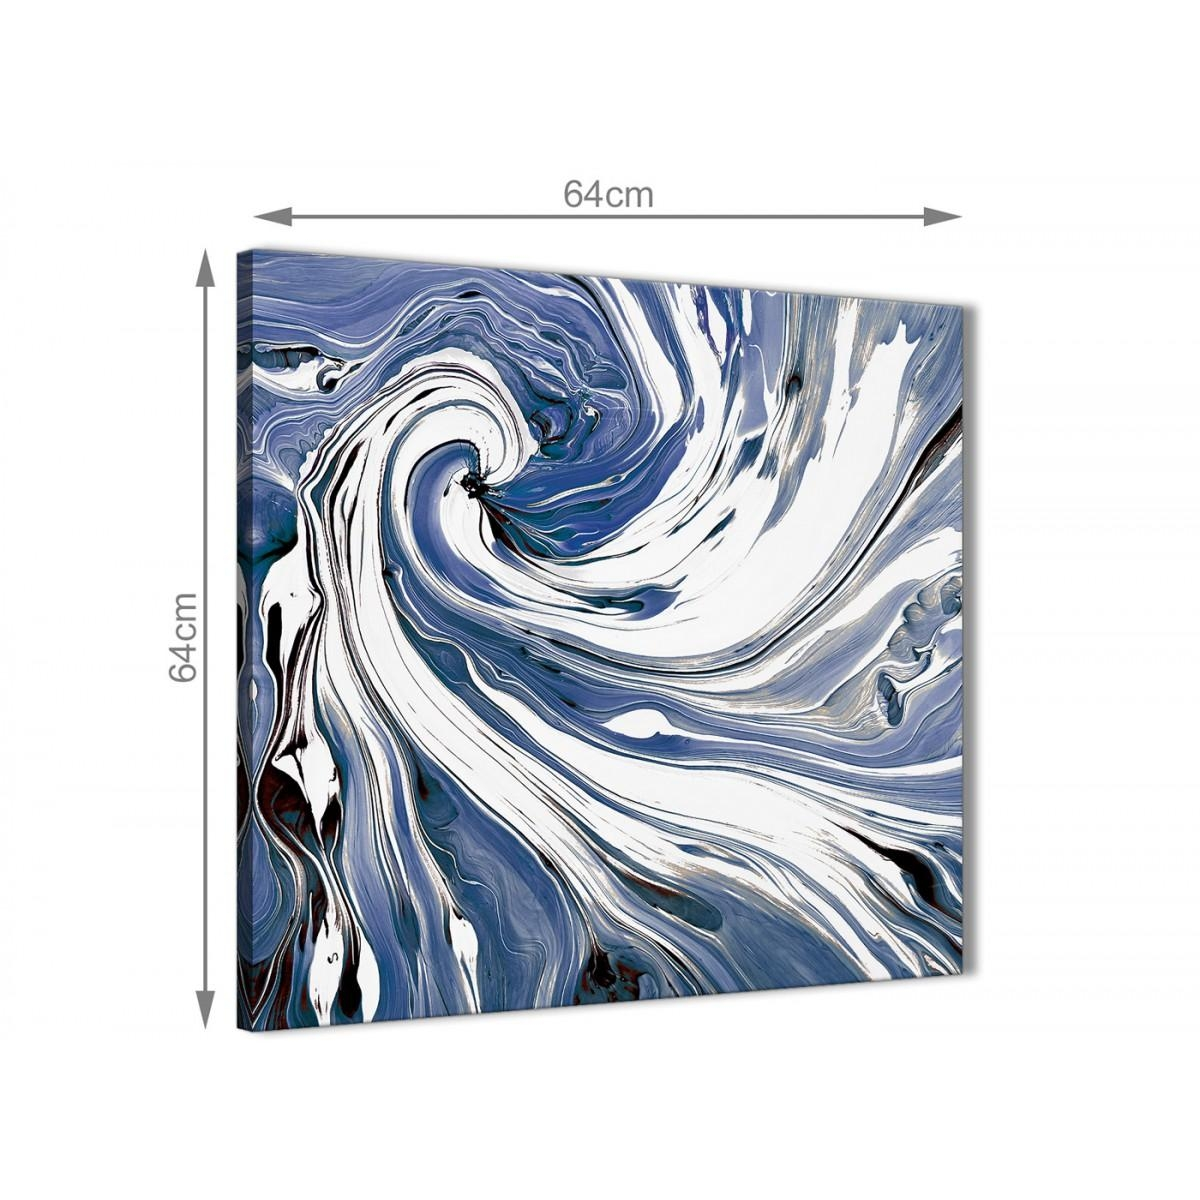 Indigo Blue White Swirls Modern Abstract Canvas Wall Art – 64Cm In Blue And White Wall Art (View 15 of 20)